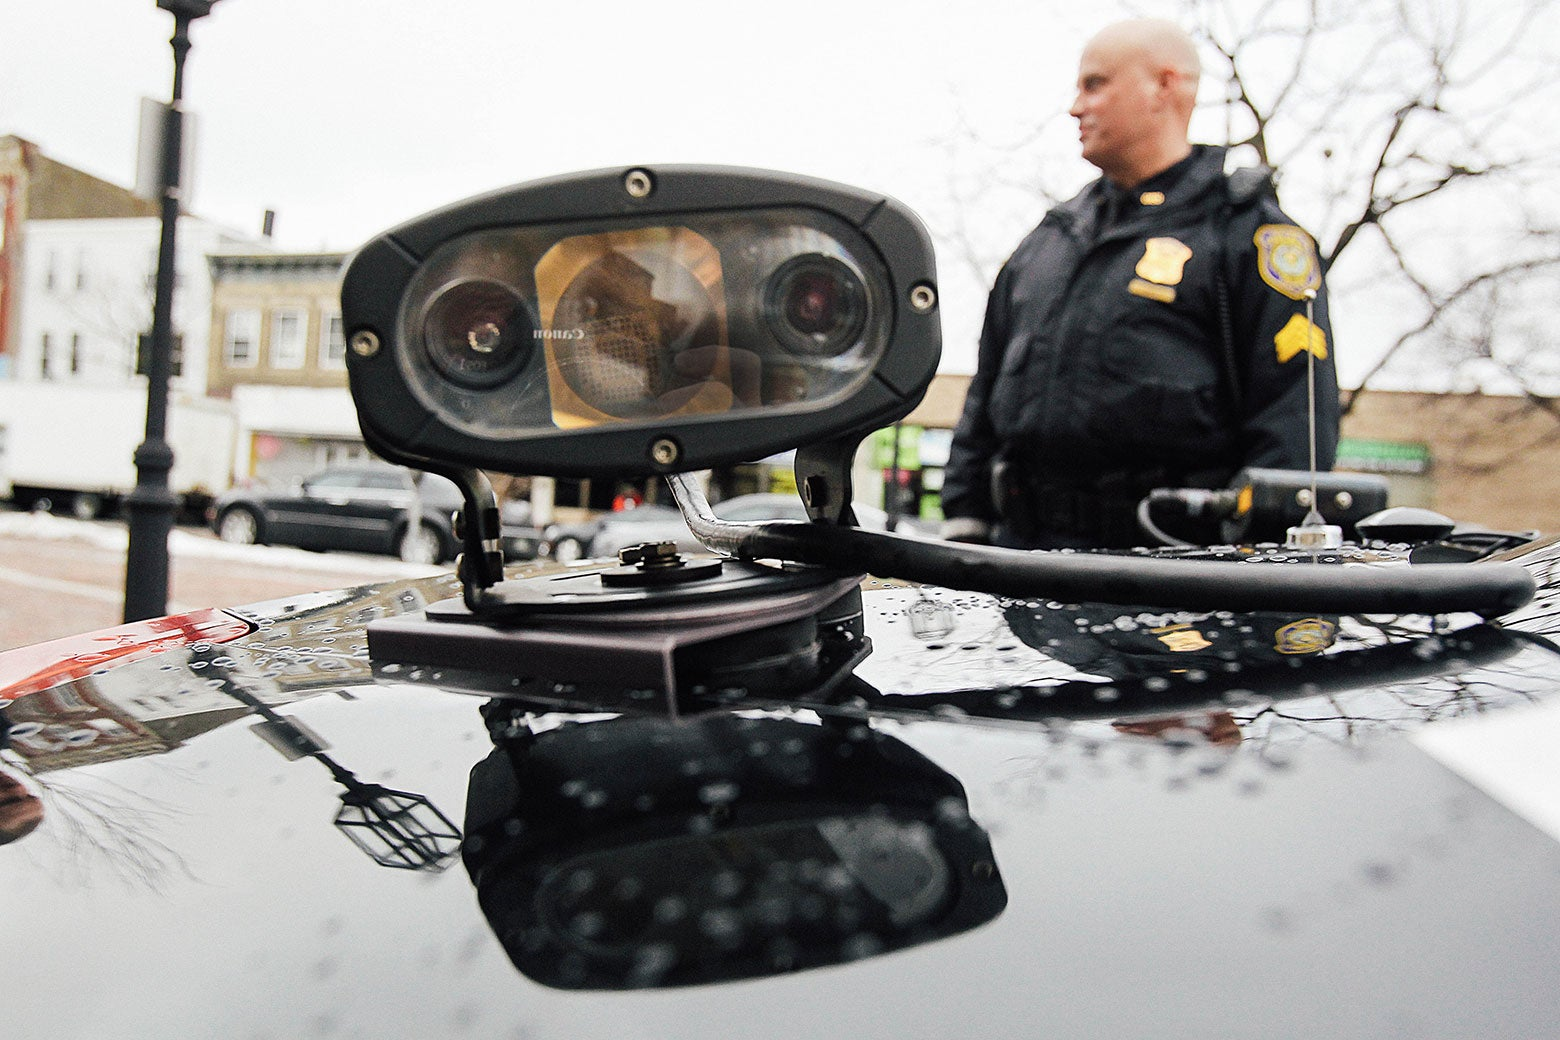 A police sergeant stands beside a cruiser equipped with an automatic license plate reader in Chelsea, Massachusetts.